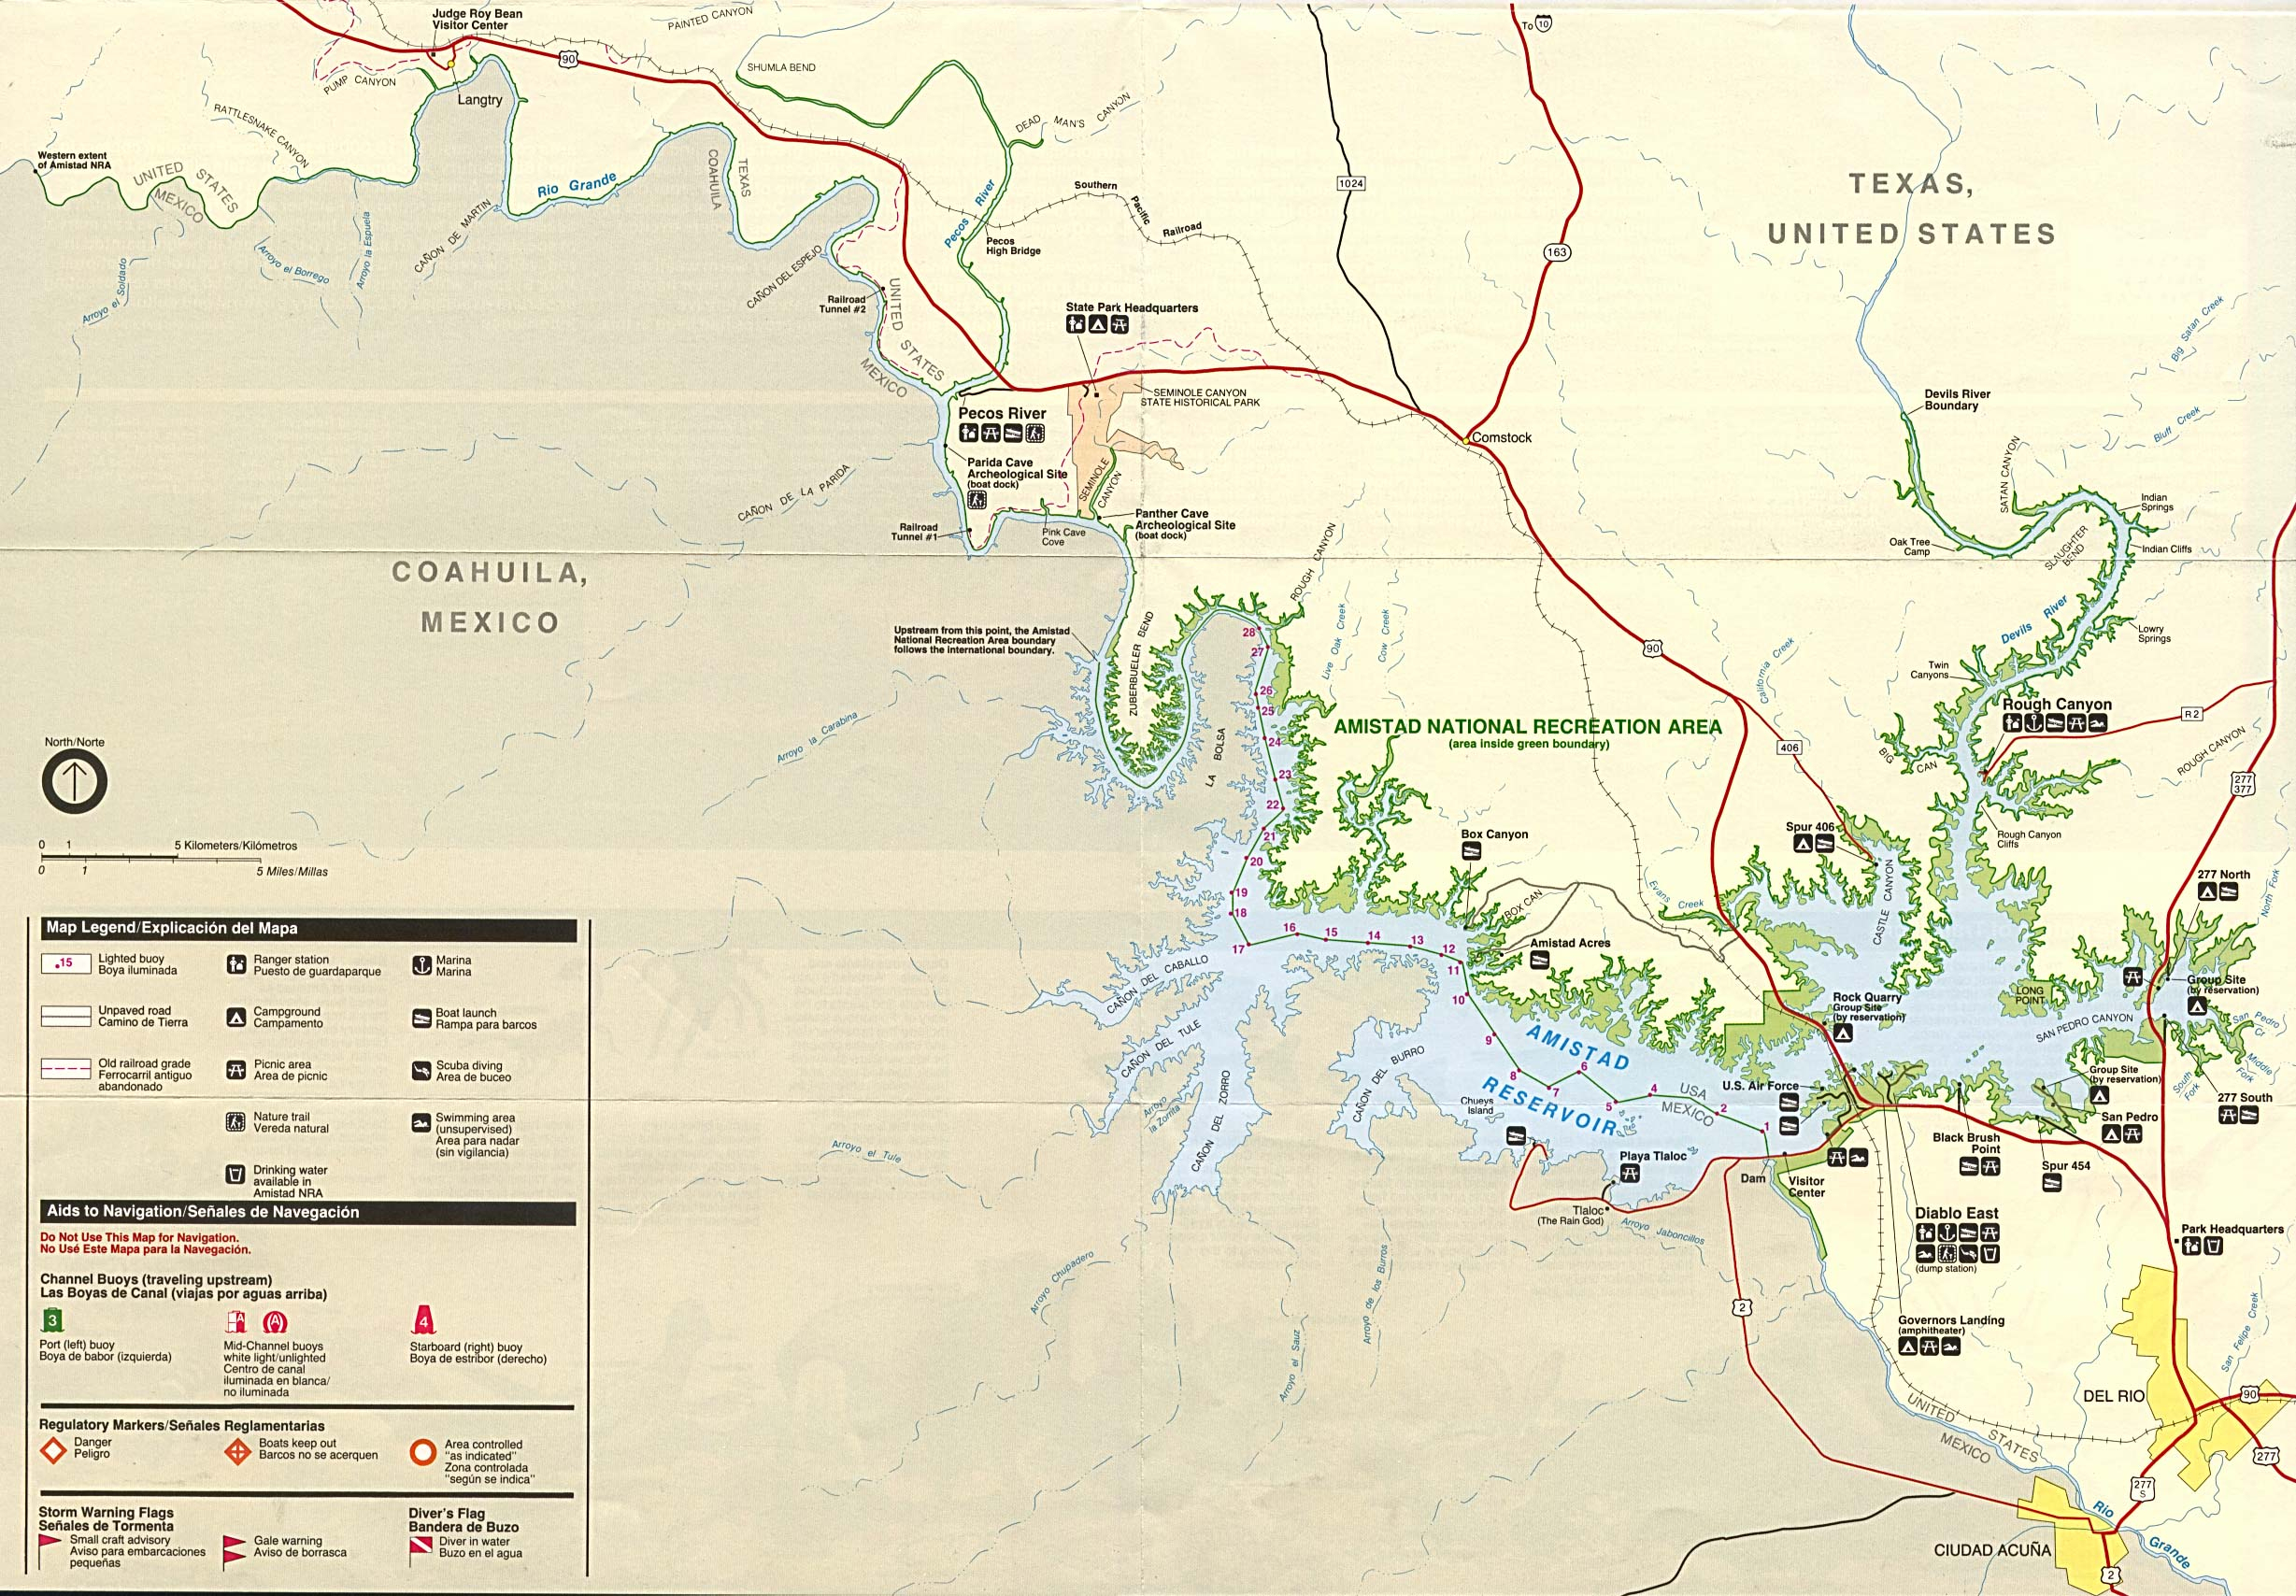 Texas State And National Park Maps - Perry-Castañeda Map Collection - Texas State Parks Map